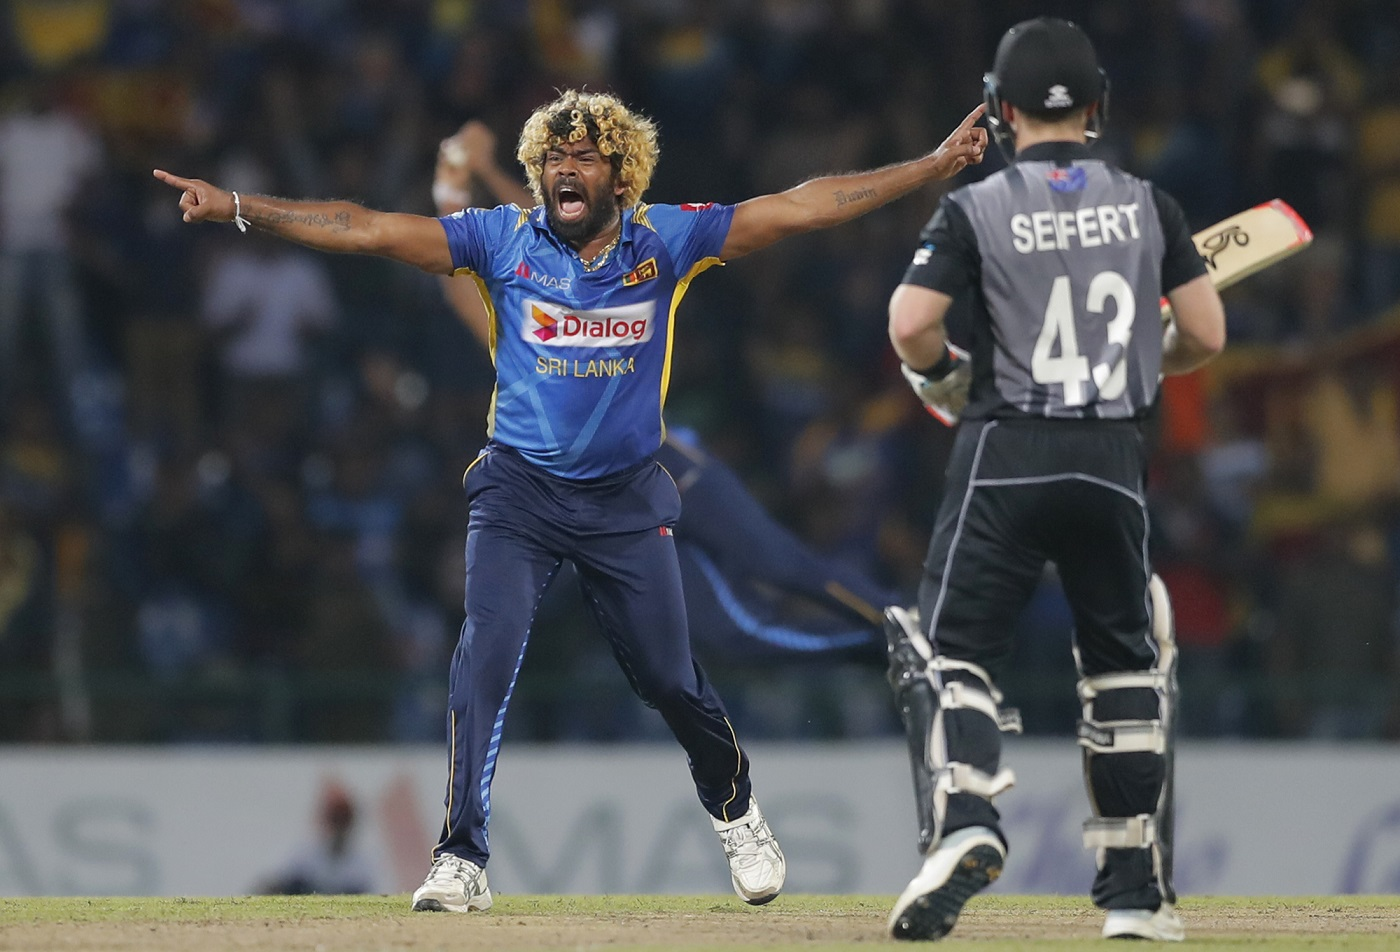 WATCH: Lasith Malinga Takes Four Wickets In Four Balls